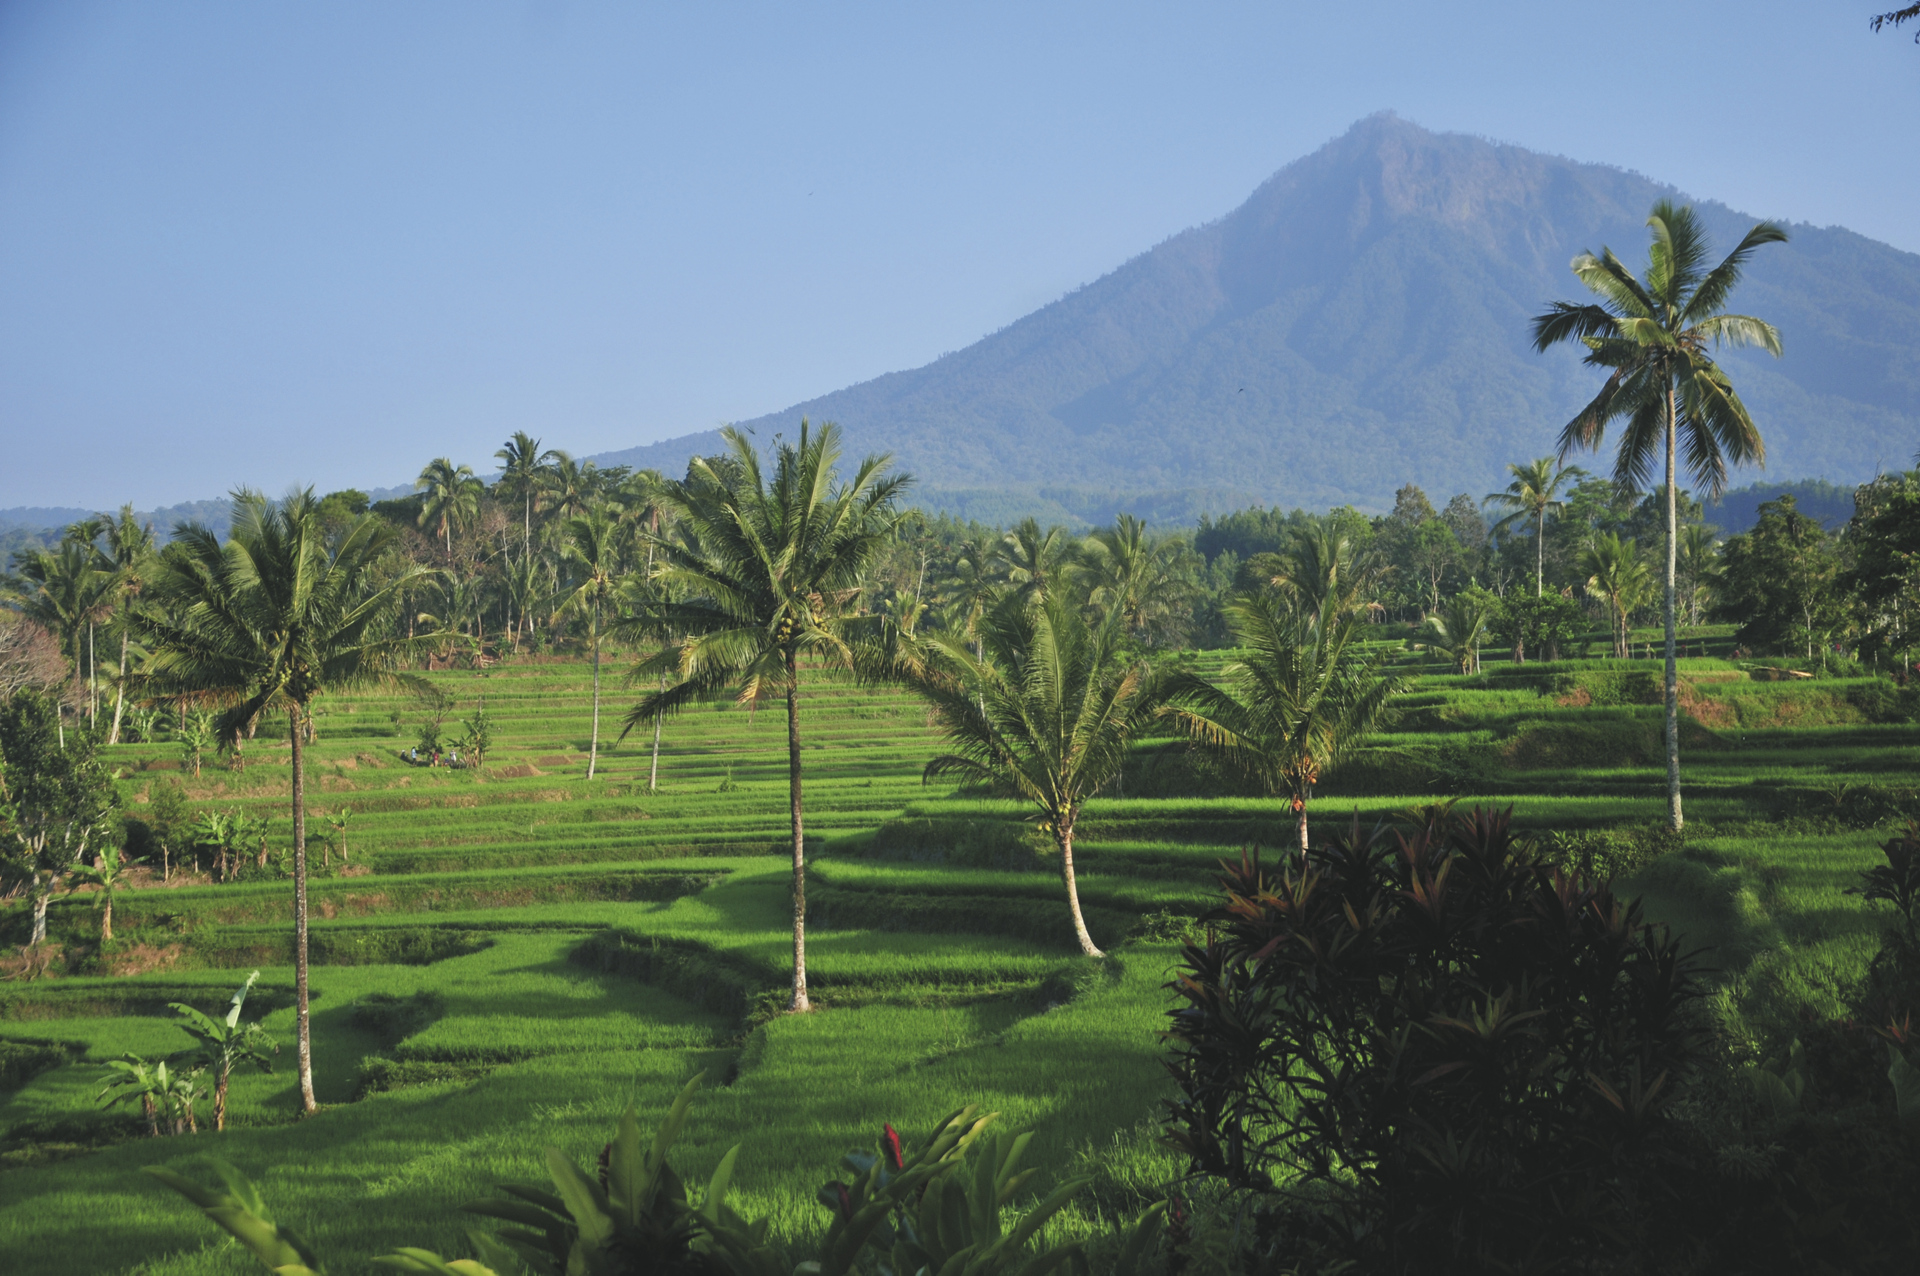 Reisterassen in Java, ©Ministry of Tourism, Republic of Indonesia